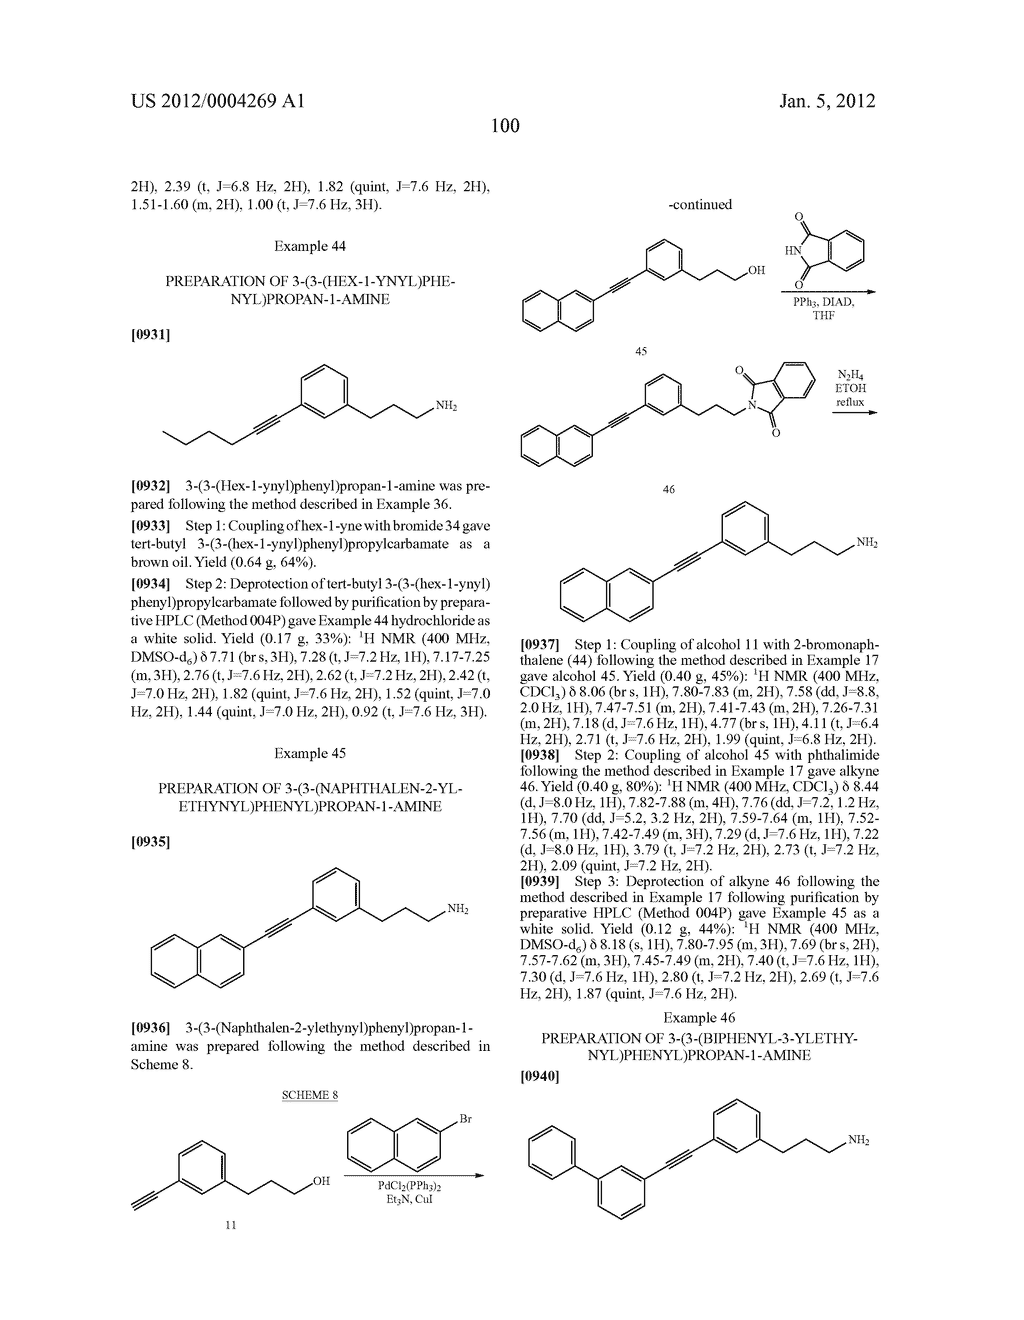 Alkynyl Phenyl Derivative Compounds for Treating Ophthalmic Diseases and     Disorders - diagram, schematic, and image 115